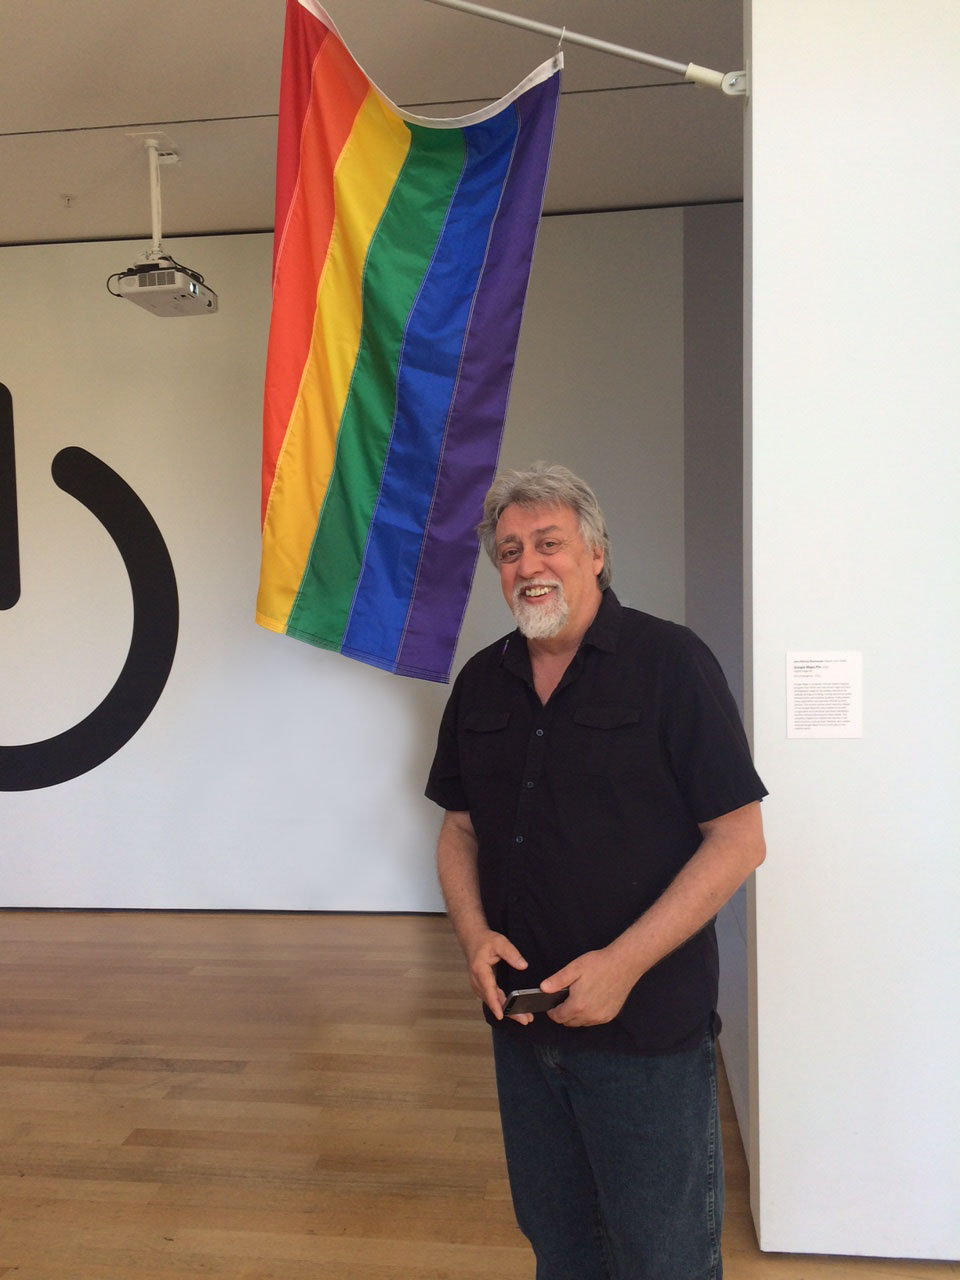 Baker with the Rainbow Flag at the Museum of Modern Art, 2015